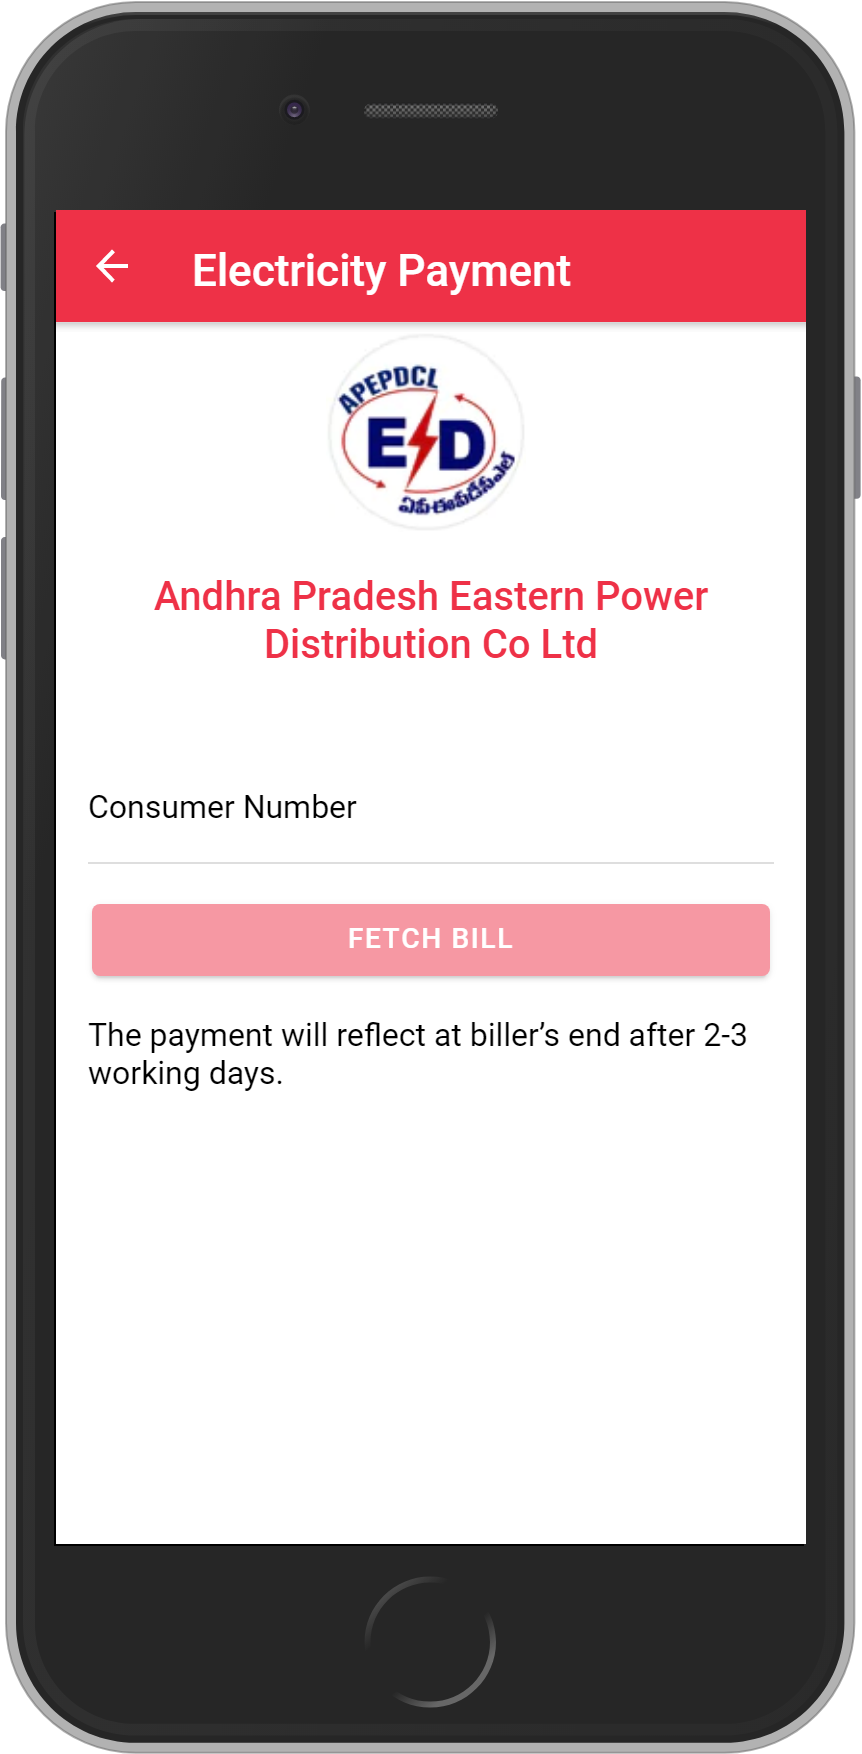 Get UNLIMITED <b>0.1%</b> CASHBACK on APEPDCL-Eastern Power Distribution CO AP Ltd Bill Payment.